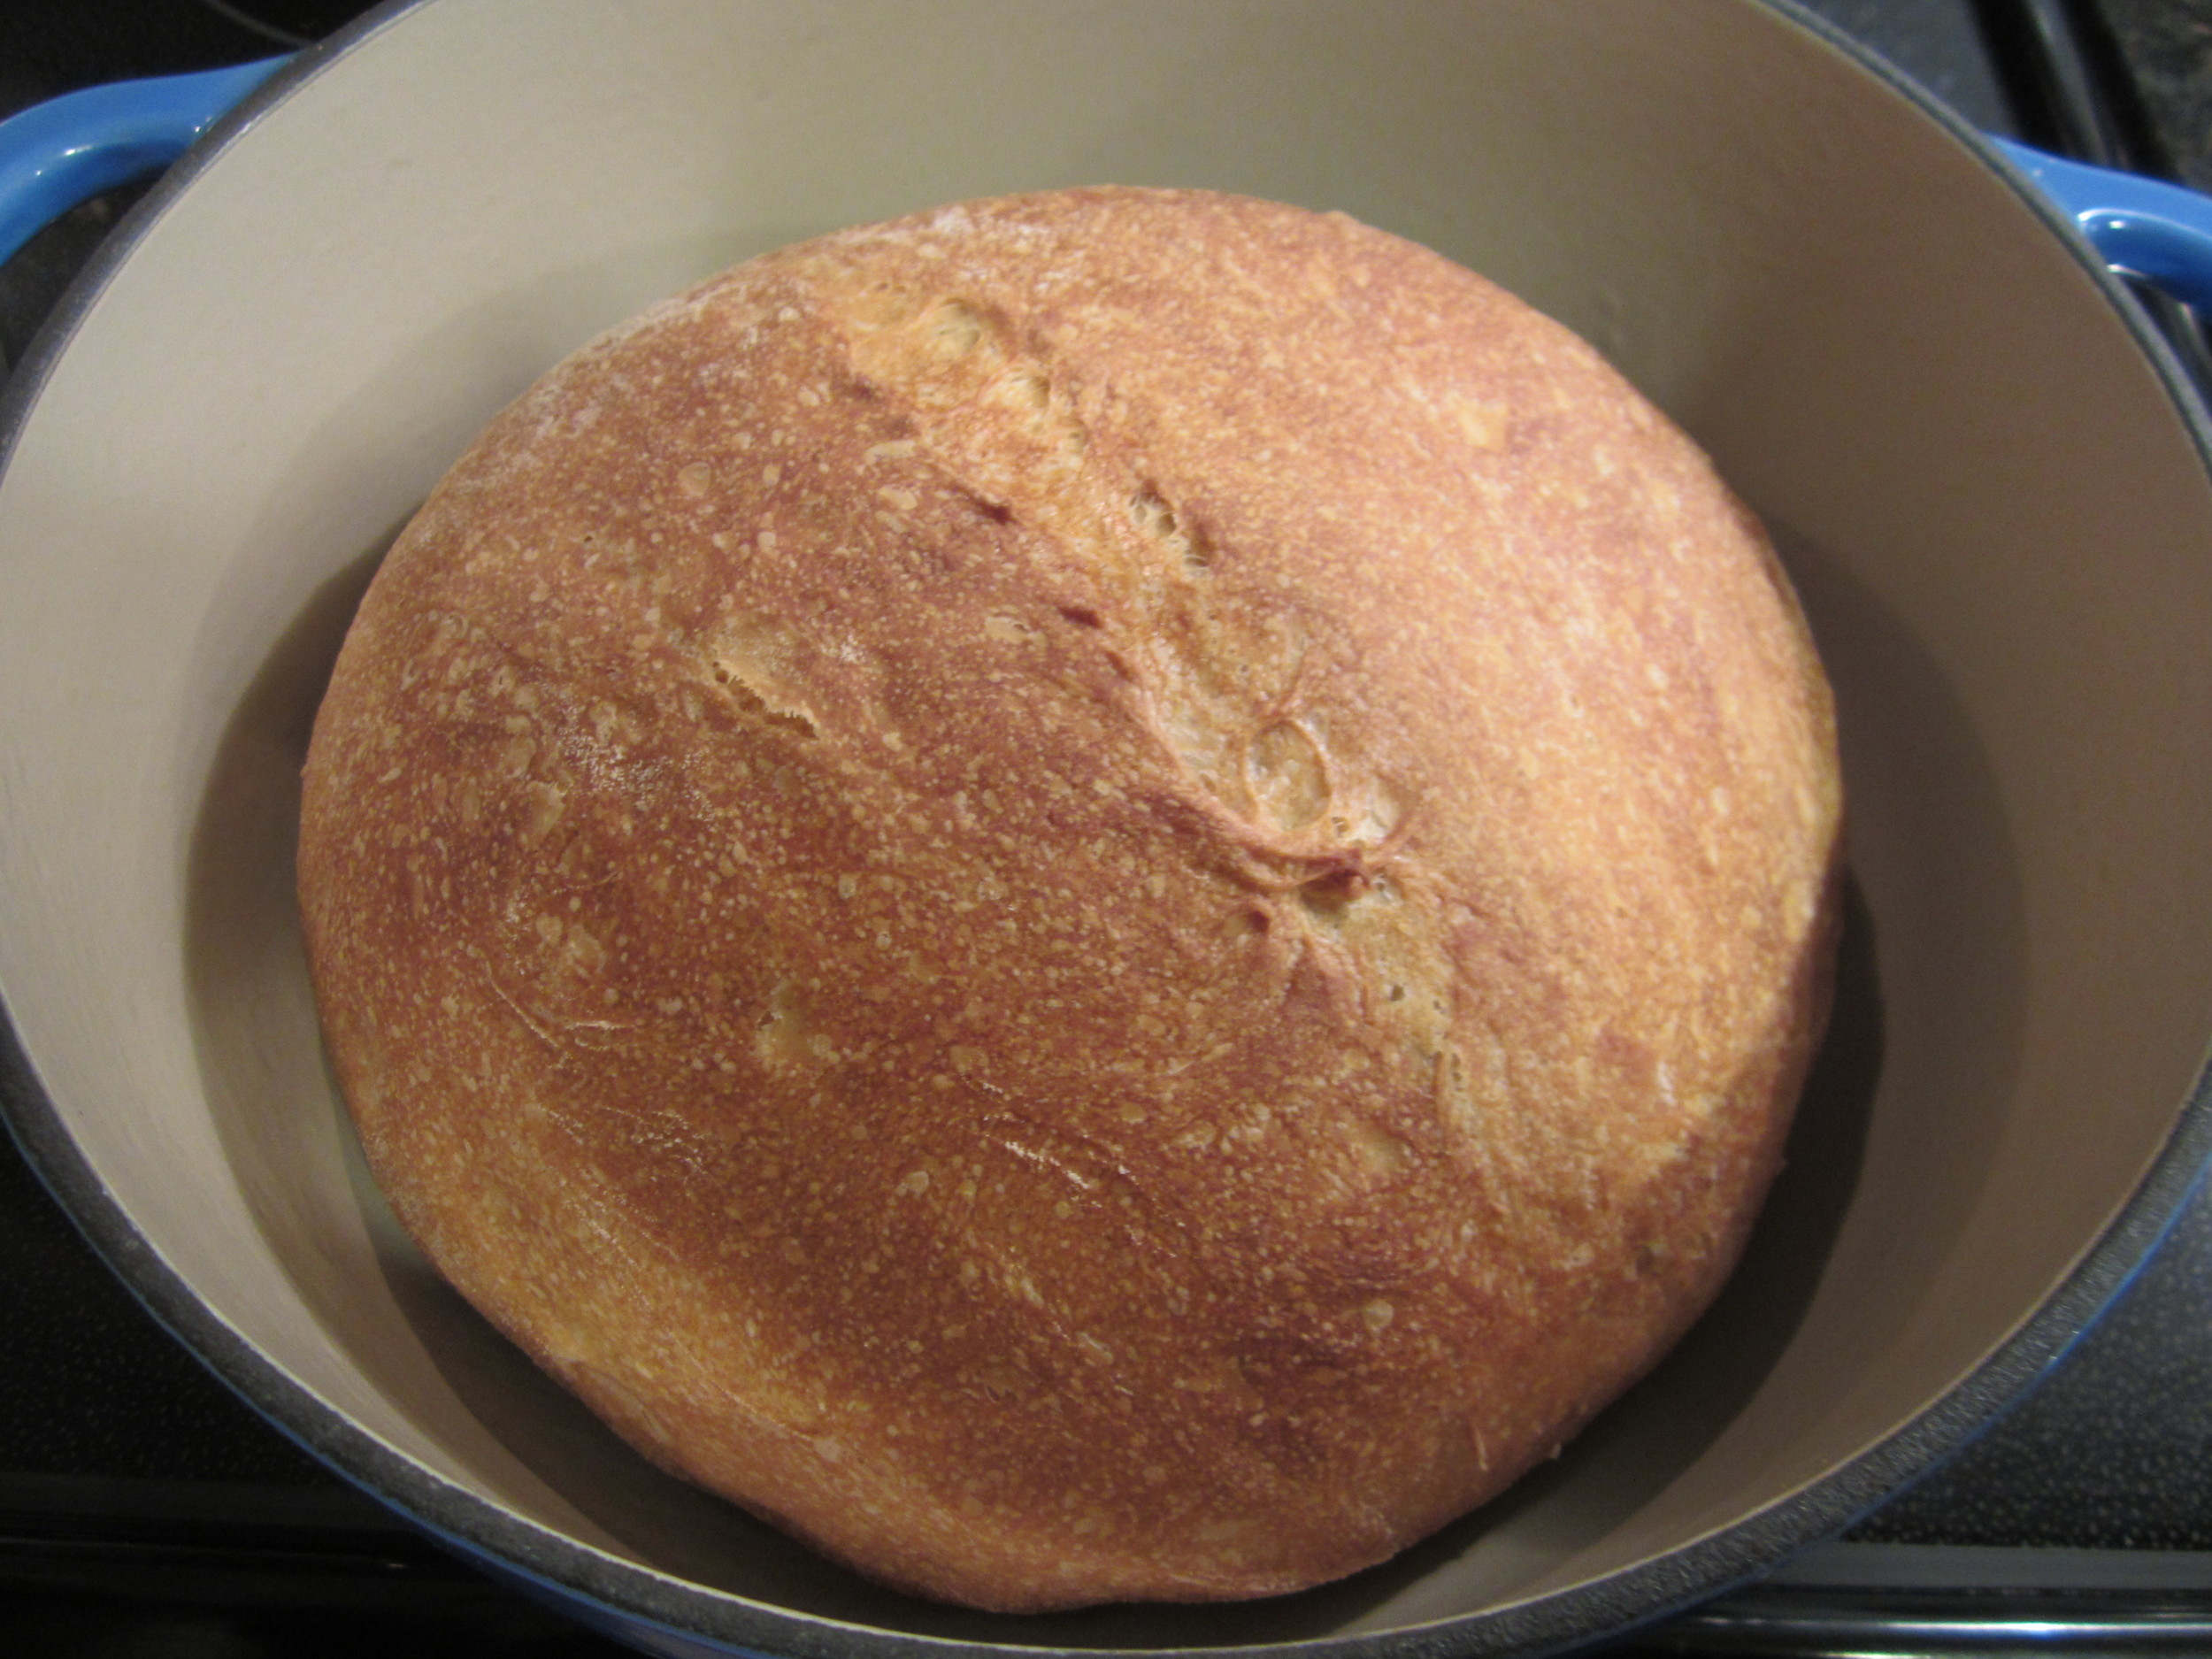 My first loaf of homemade sourdough bread. Will sourdough bread prove to be low in FODMAPs?